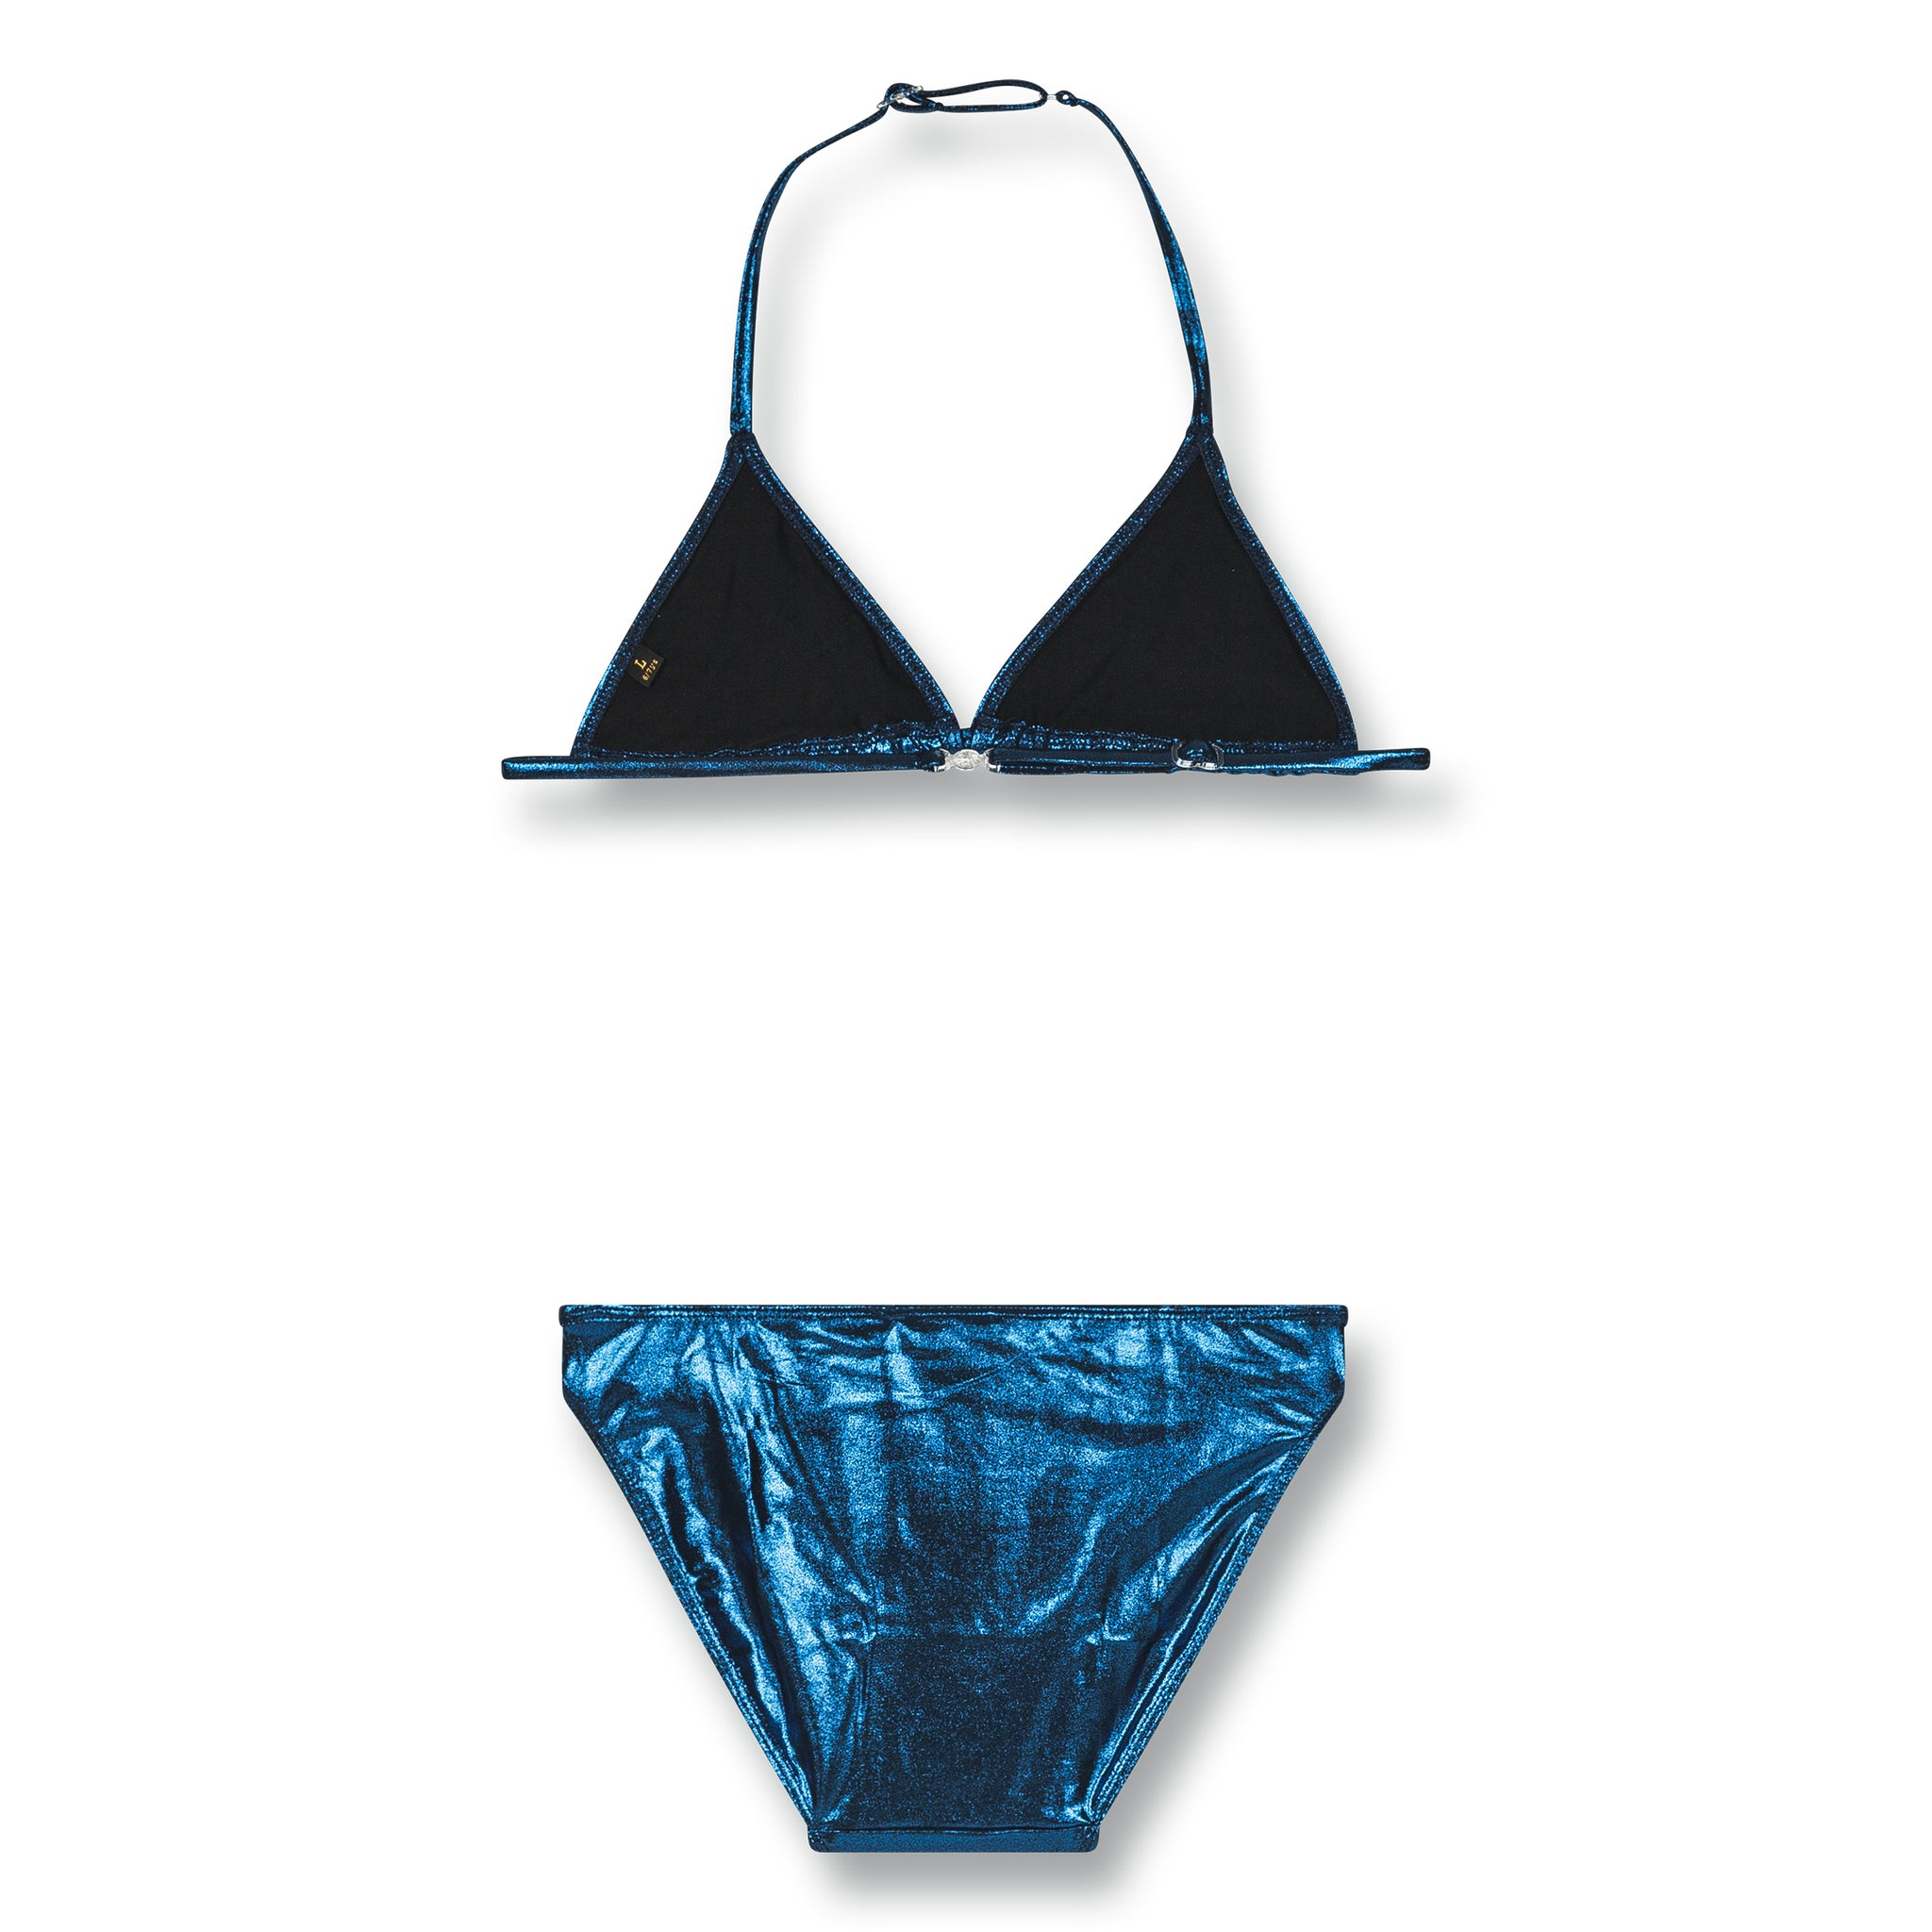 NOUMEA Blue Metal -Triangle Bikini 2